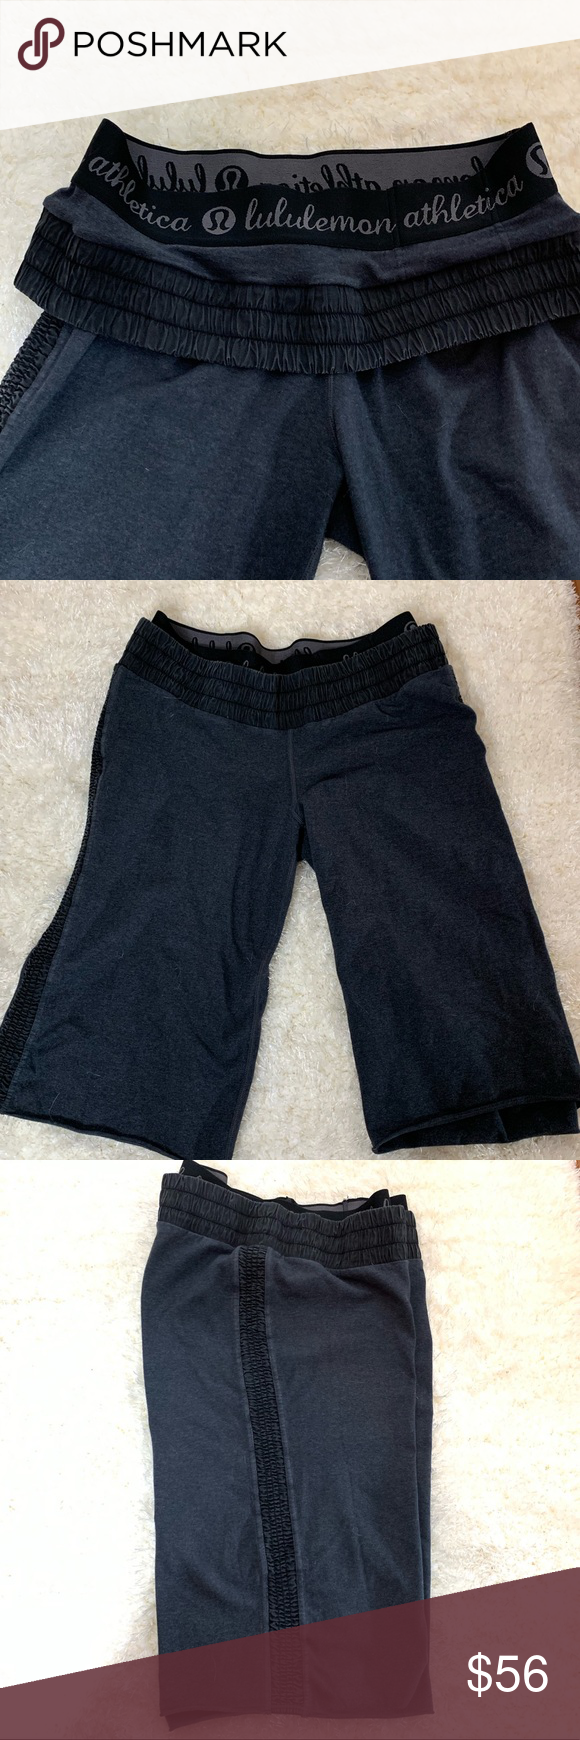 """Lululemon Pranotthana Crop Pranotthana Crop is an alternative to the traditional lululemon crop. Made with Organic cotton. Super soft and cozy. Great for Yoga.  Size tag is missing. I listed as a size 6. Please see measurements for proper fit.  Double waist band allows you to wear them both up or roll the outer band down. Low rise crop  Please pay close attention to the measurements as size tag is missing   Waist 14"""" (not stretched- they do have some stretch) Length 21"""" from waist to hem. #0214"""